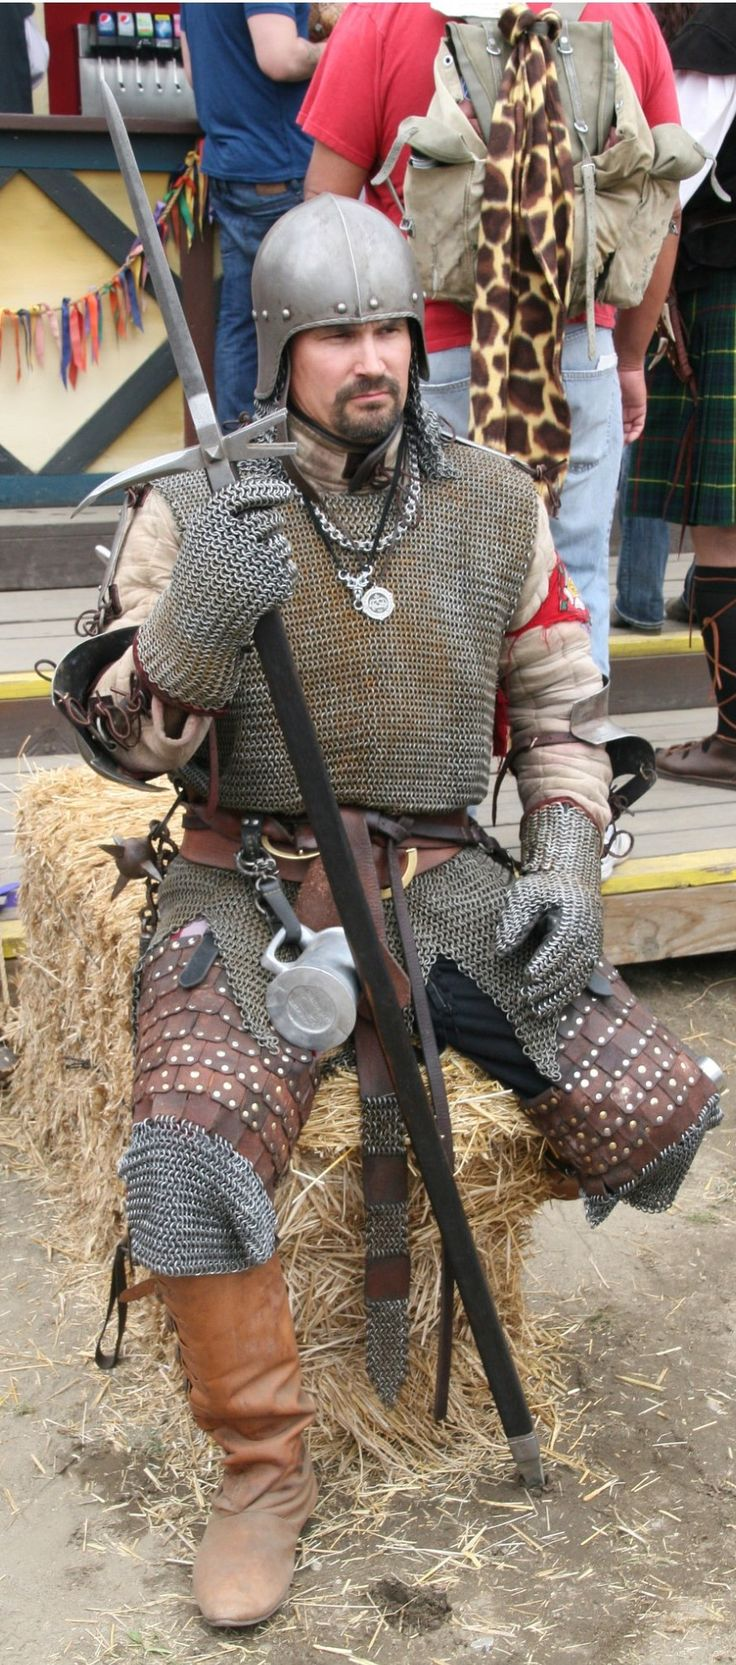 Armor 15th century, military campaign armored German light infintry, mercenarie, German flail, Bec de corbin, gambeson, Chainmail shirt, jack chains, chainmail gloves, Brigandine upper leg armor, open face sallet with Aventail. David Bobrink